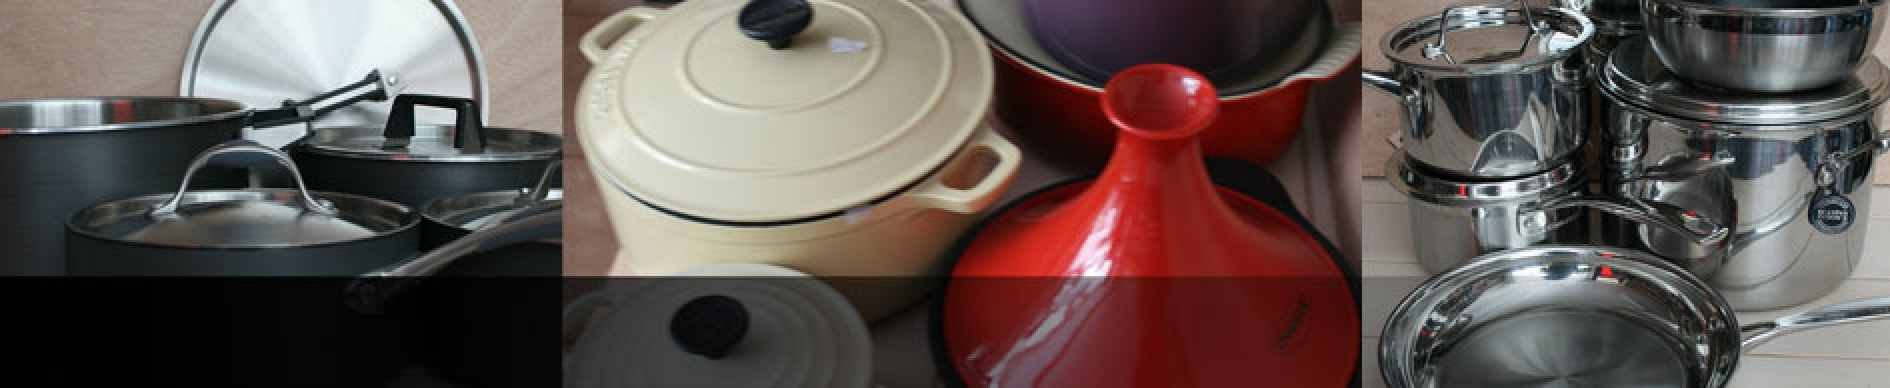 Cookcraft Kitchen - Pots and Pans